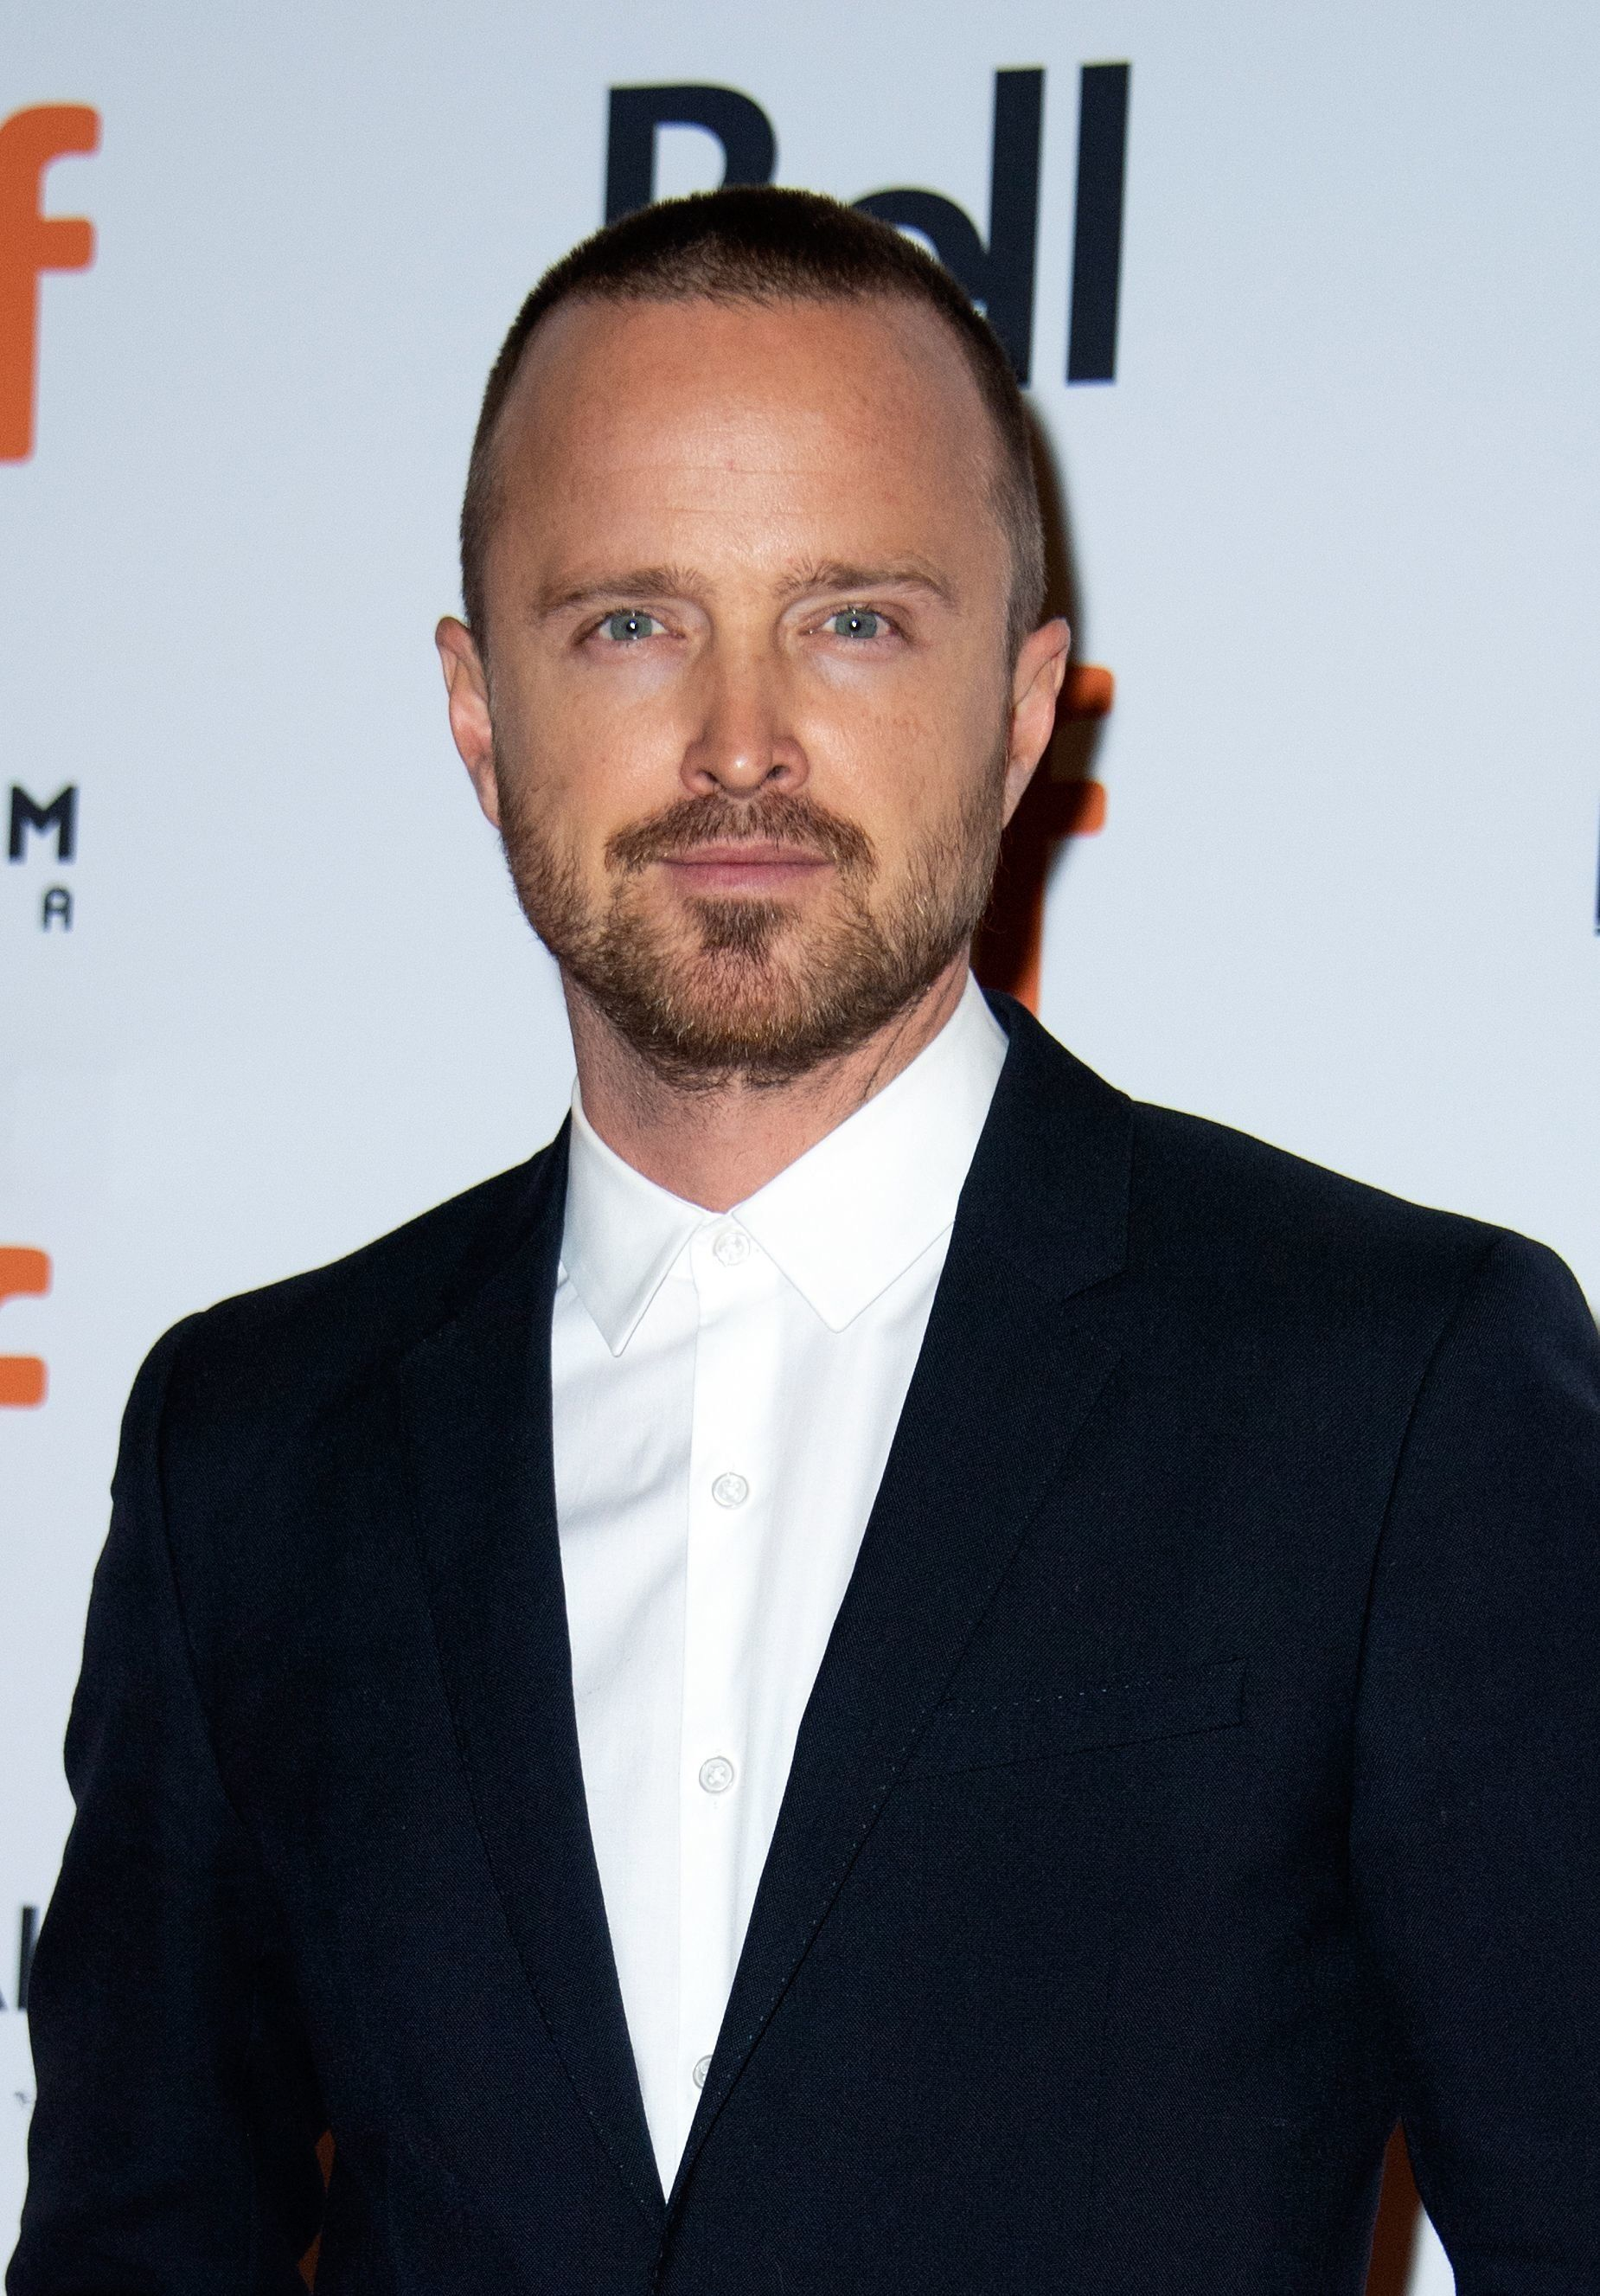 Actor Aaron Paul attends the premiere of 'American Woman' during the Toronto International Film Festival, on September 9, 2018, in Toronto, Ontario, Canada. (Photo by VALERIE MACON / AFP)        (Photo credit should read VALERIE MACON/AFP/Getty Images)